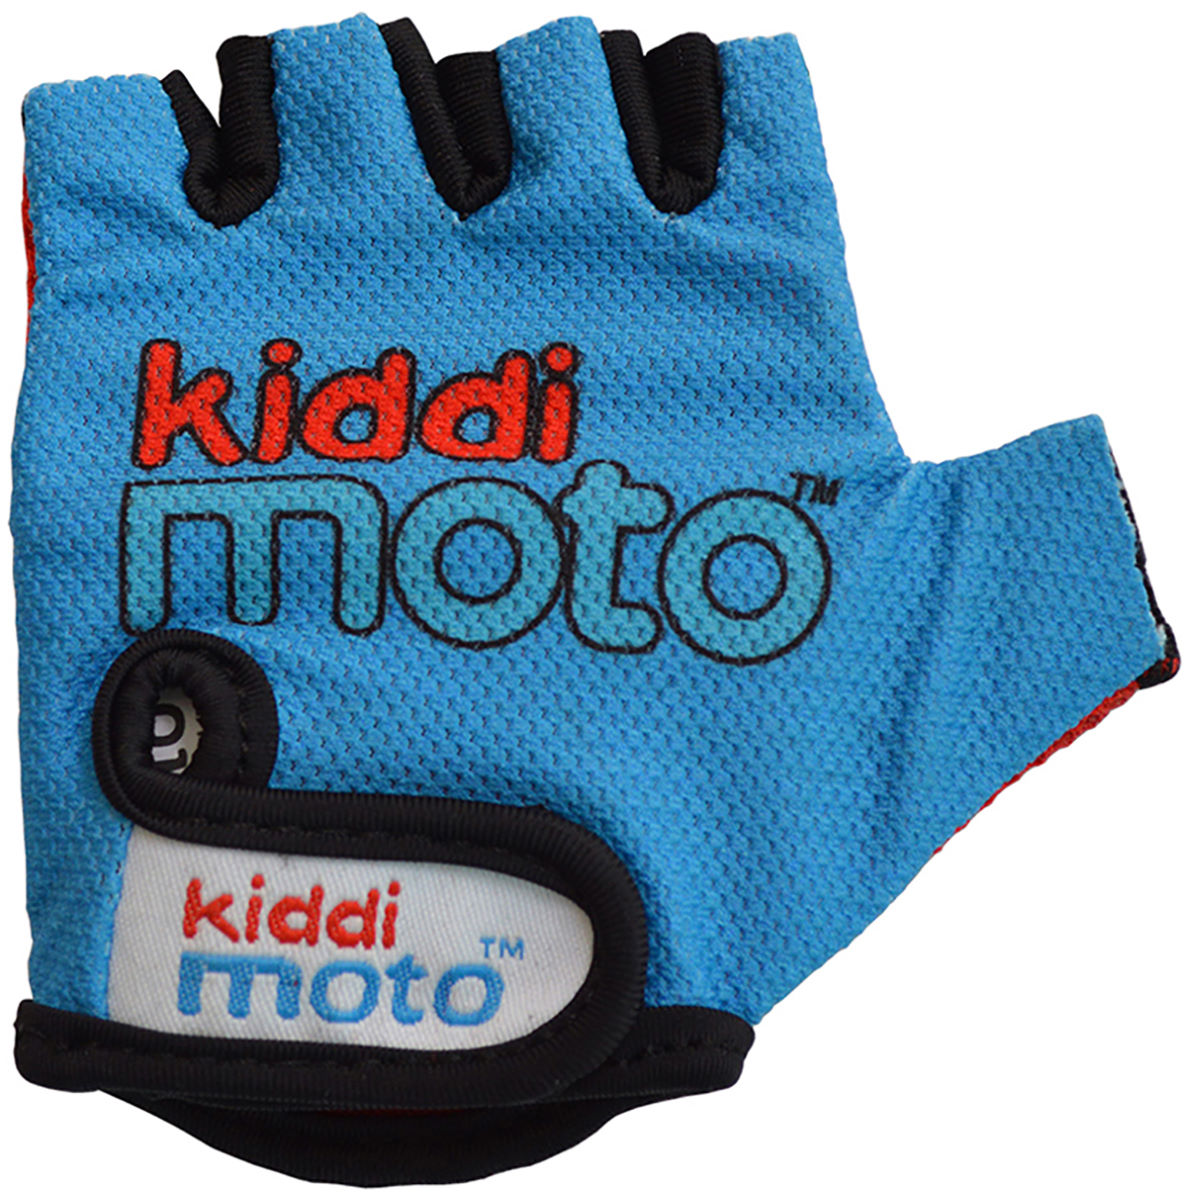 Kiddimoto Blue Gloves - Guantes